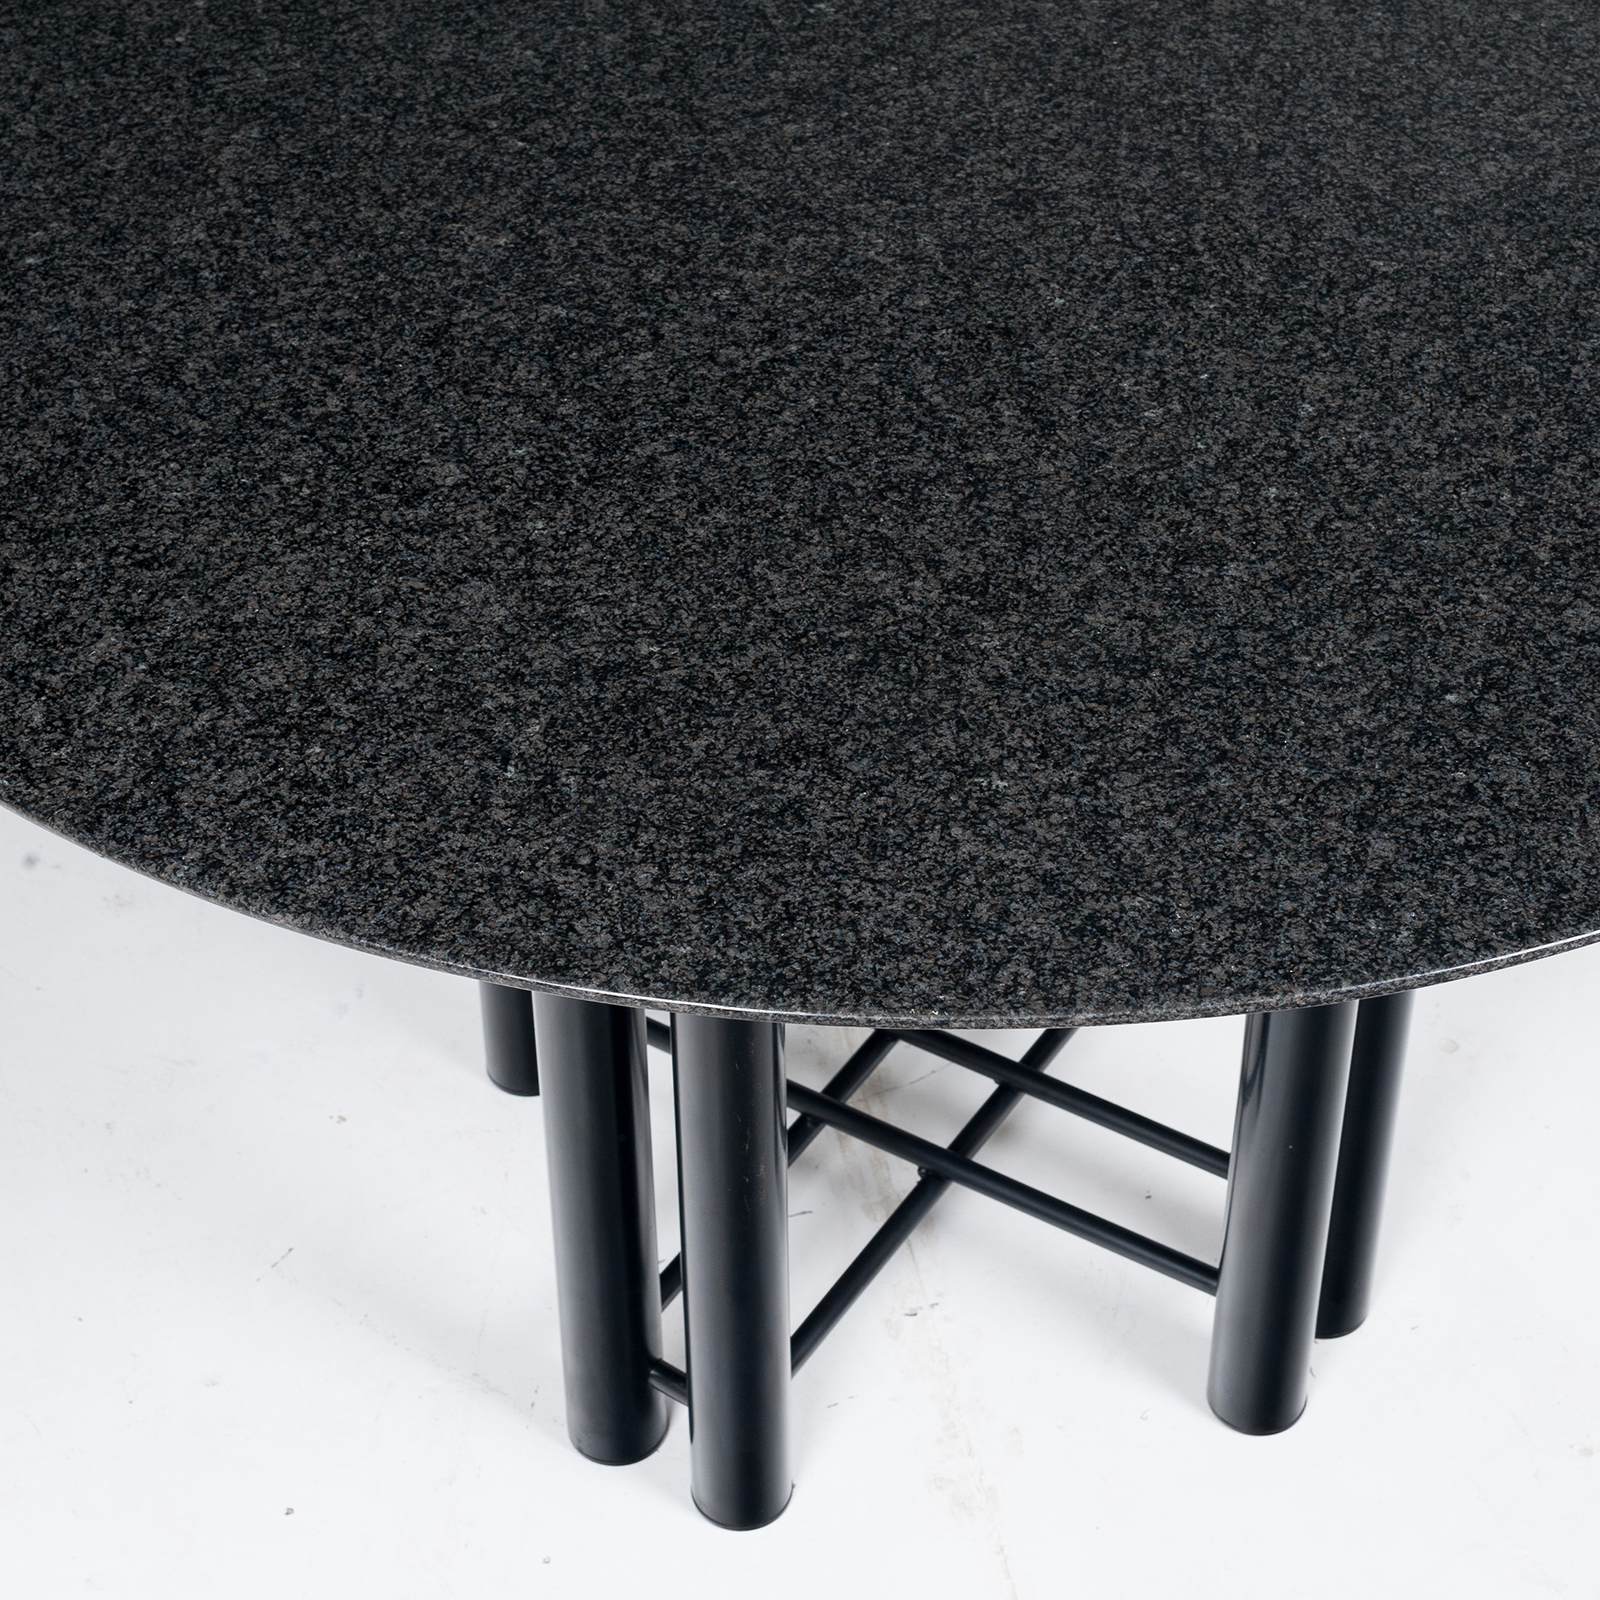 Round Dining Table By Metaform In Black Granite, 1970s, The Netherlands3